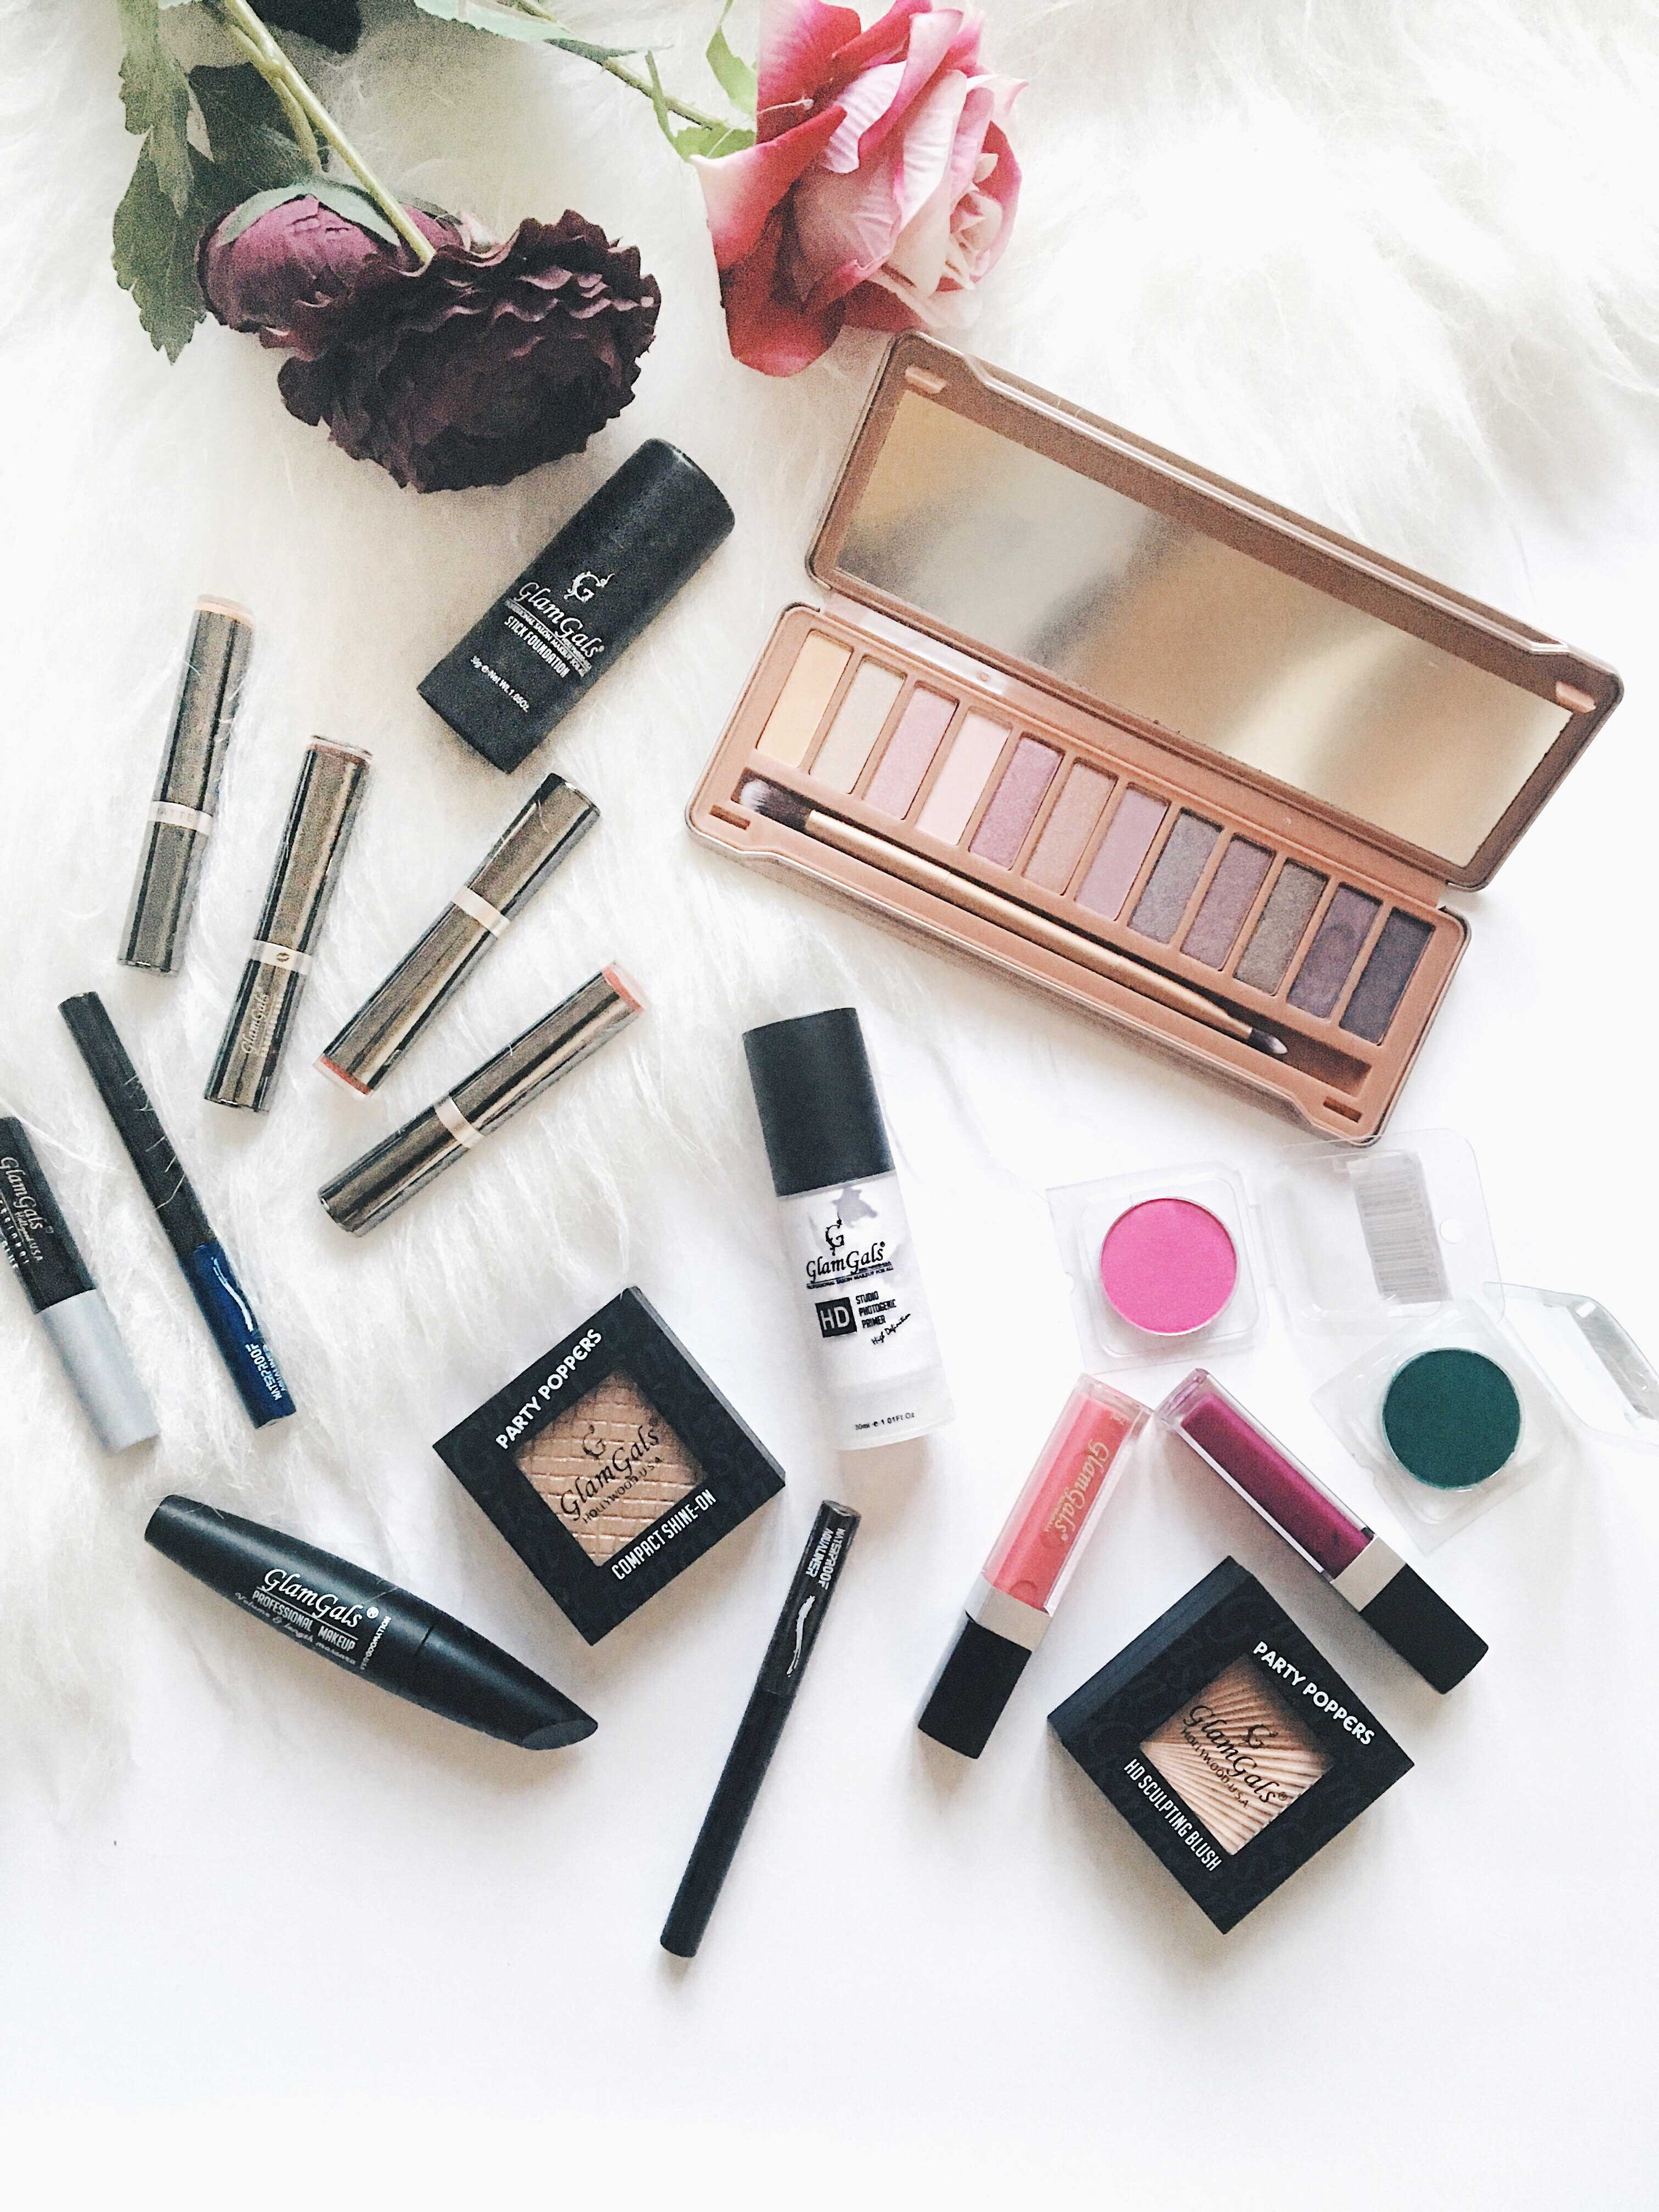 Makeup Looks Ft. GlamGalsCosmetics + Review 02